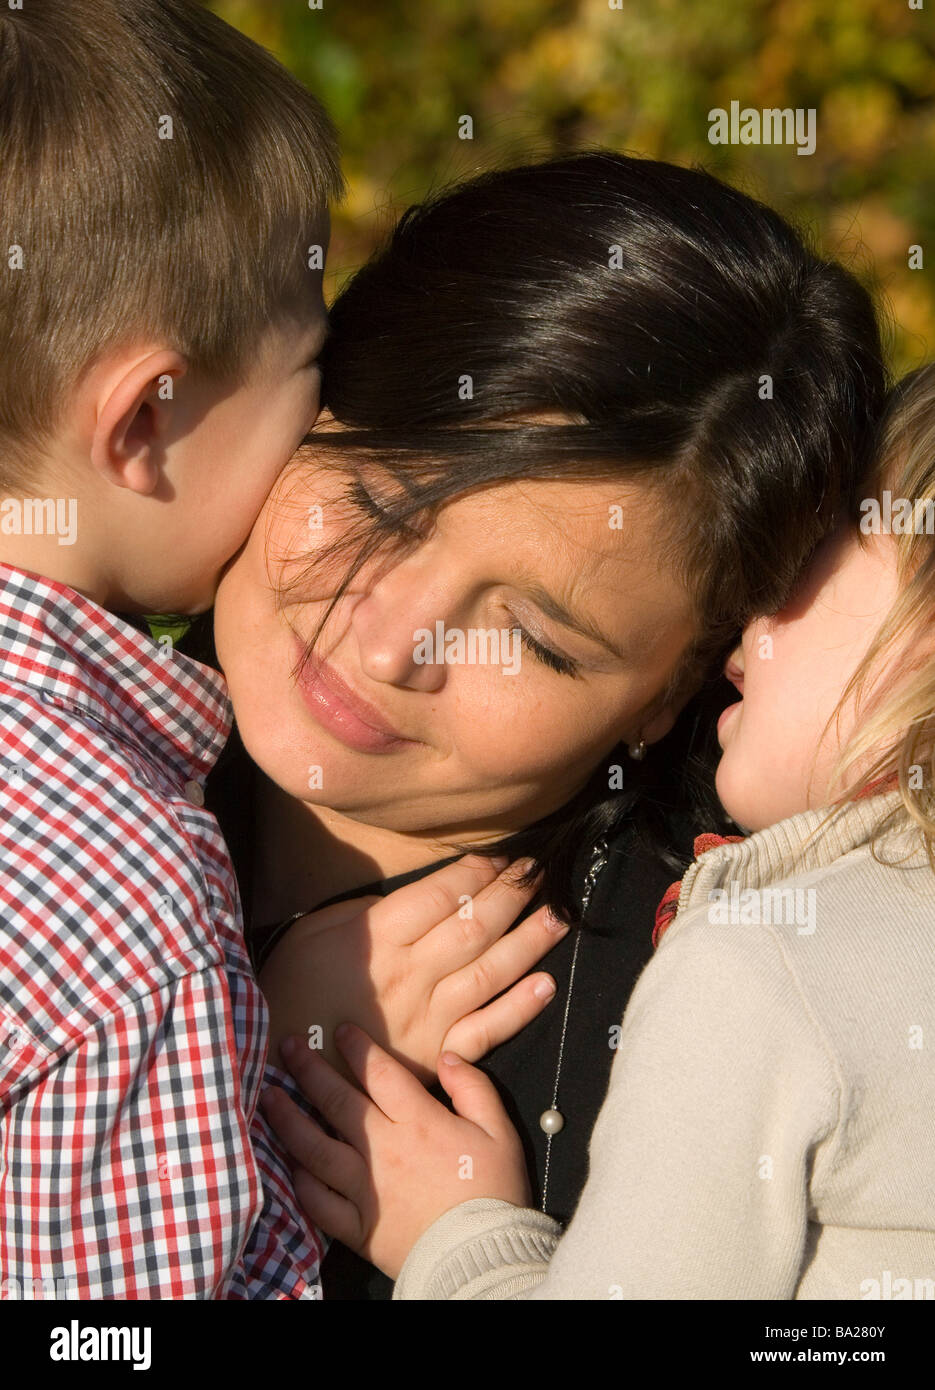 Mom with kid closes eyes with tender - Stock Image